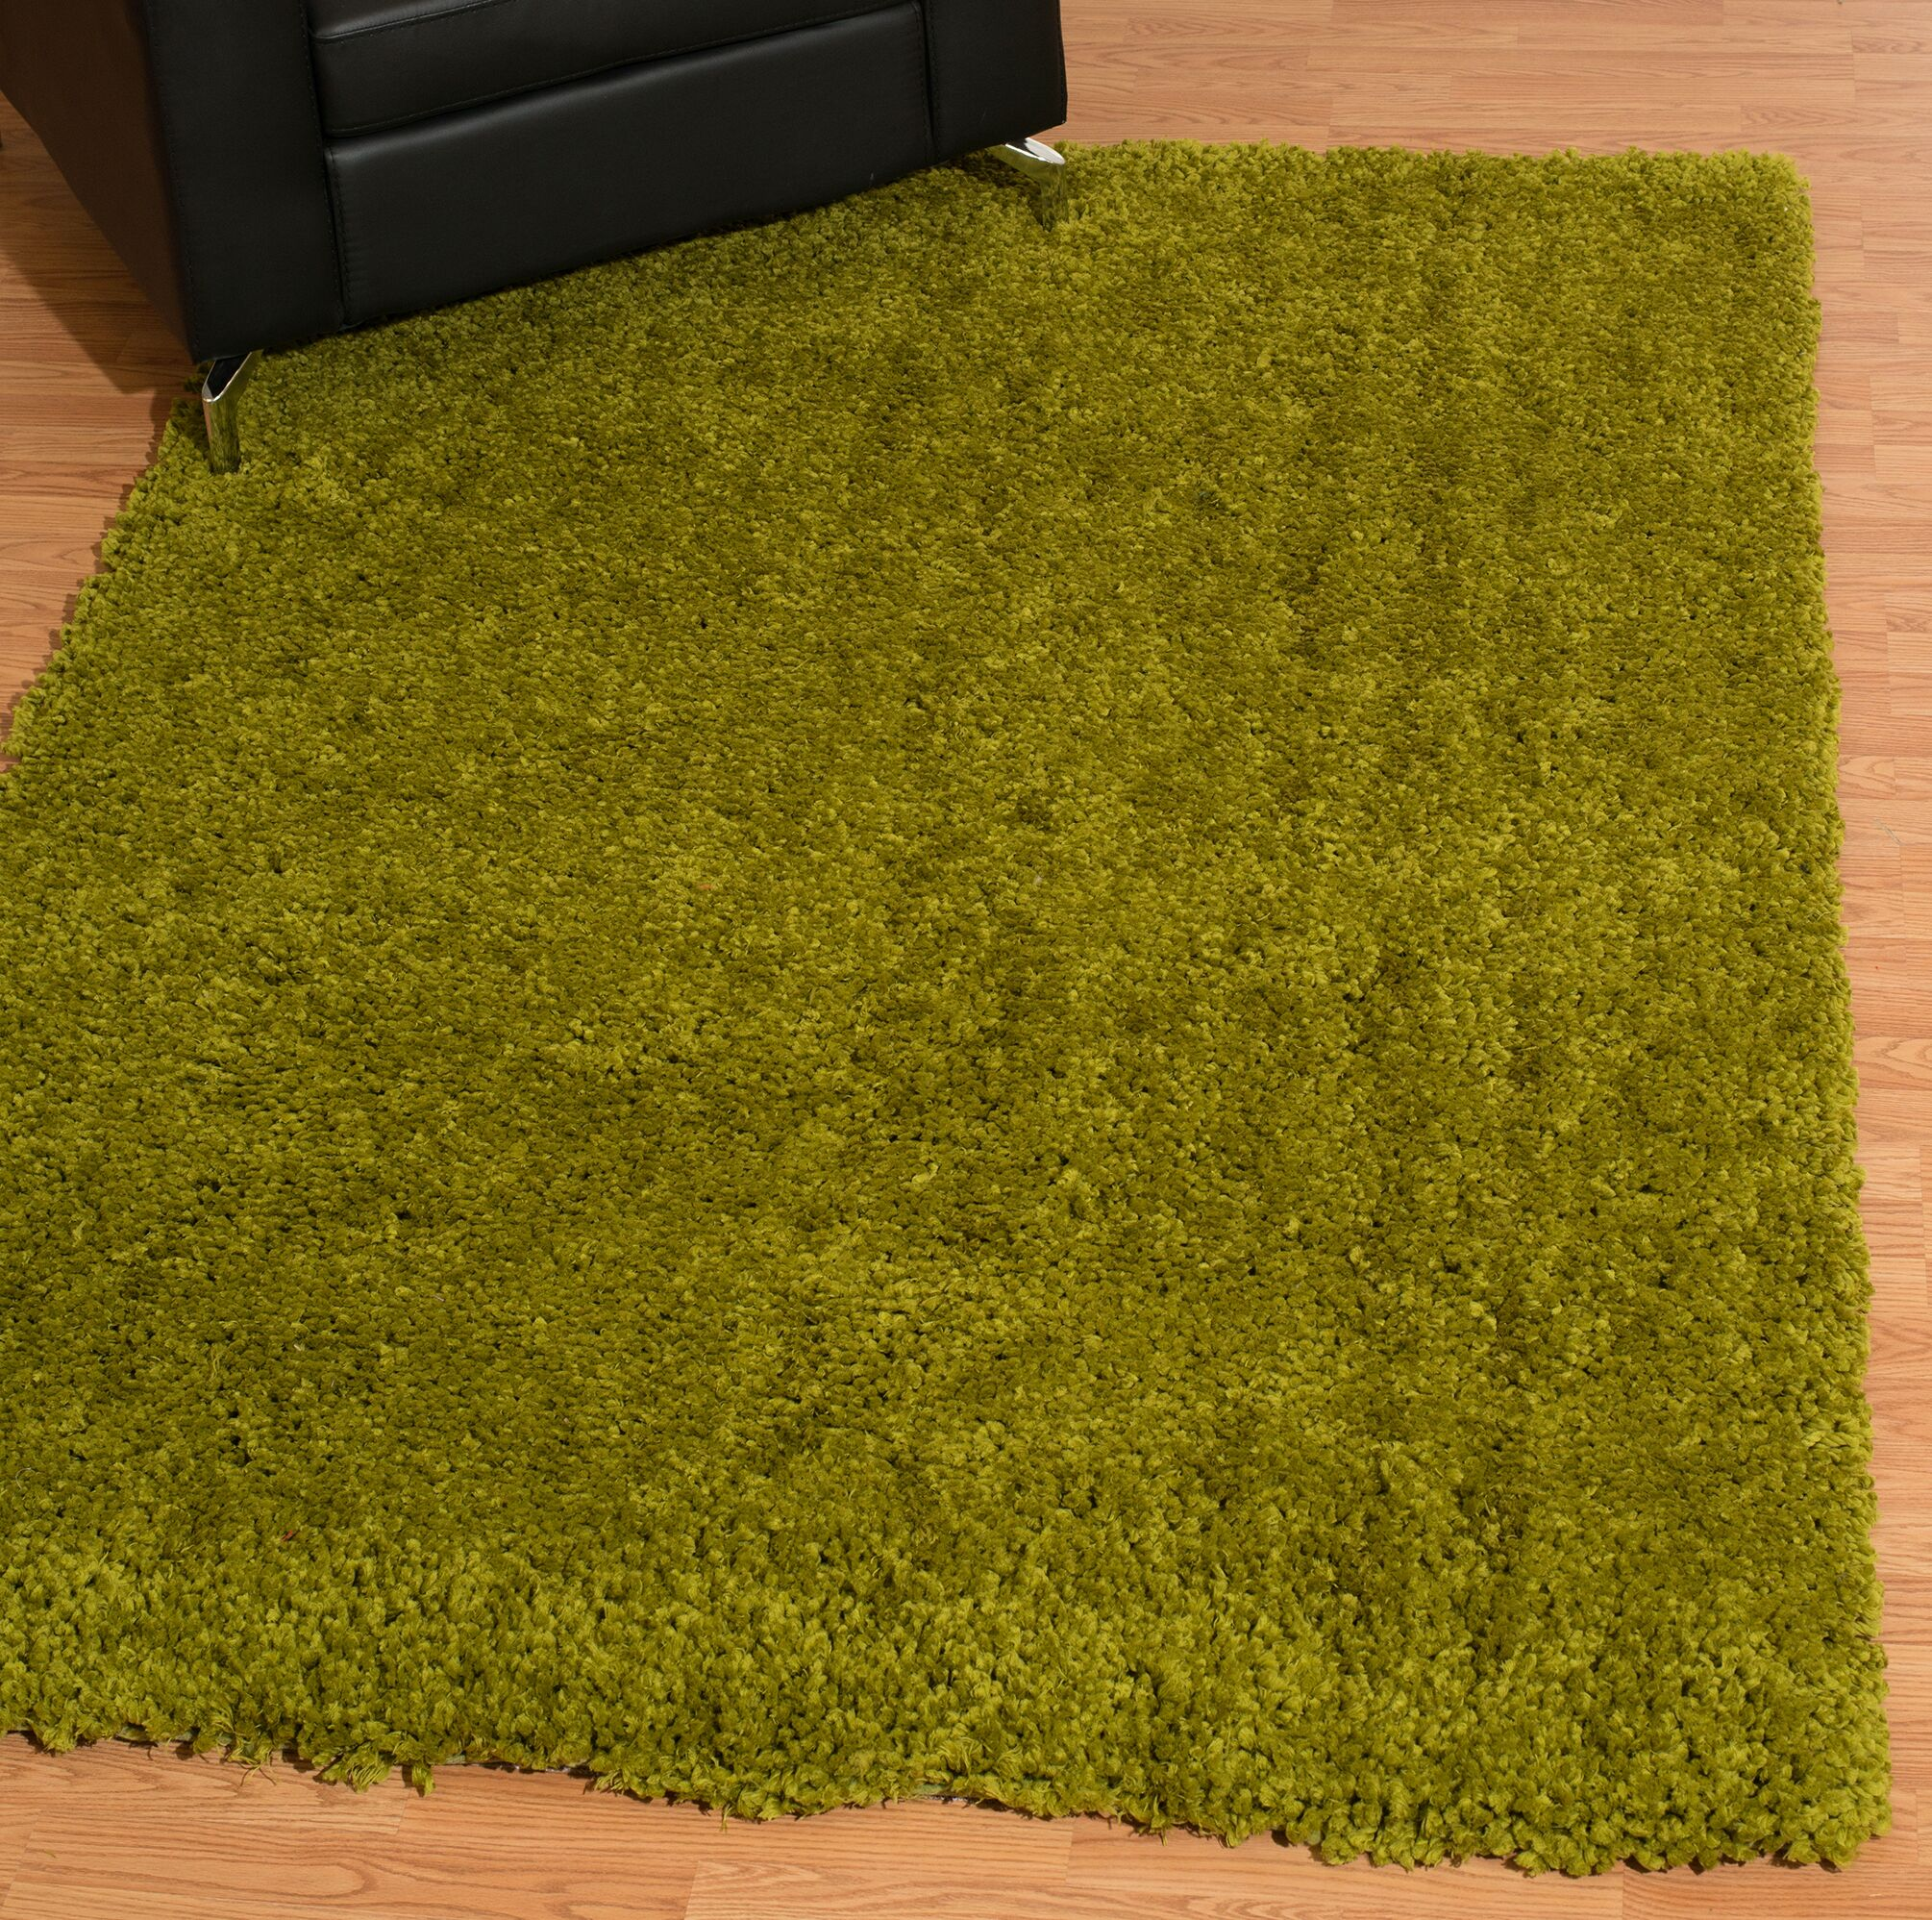 Mullenix Green Area Rug Rug Size: Rectangle 5'3